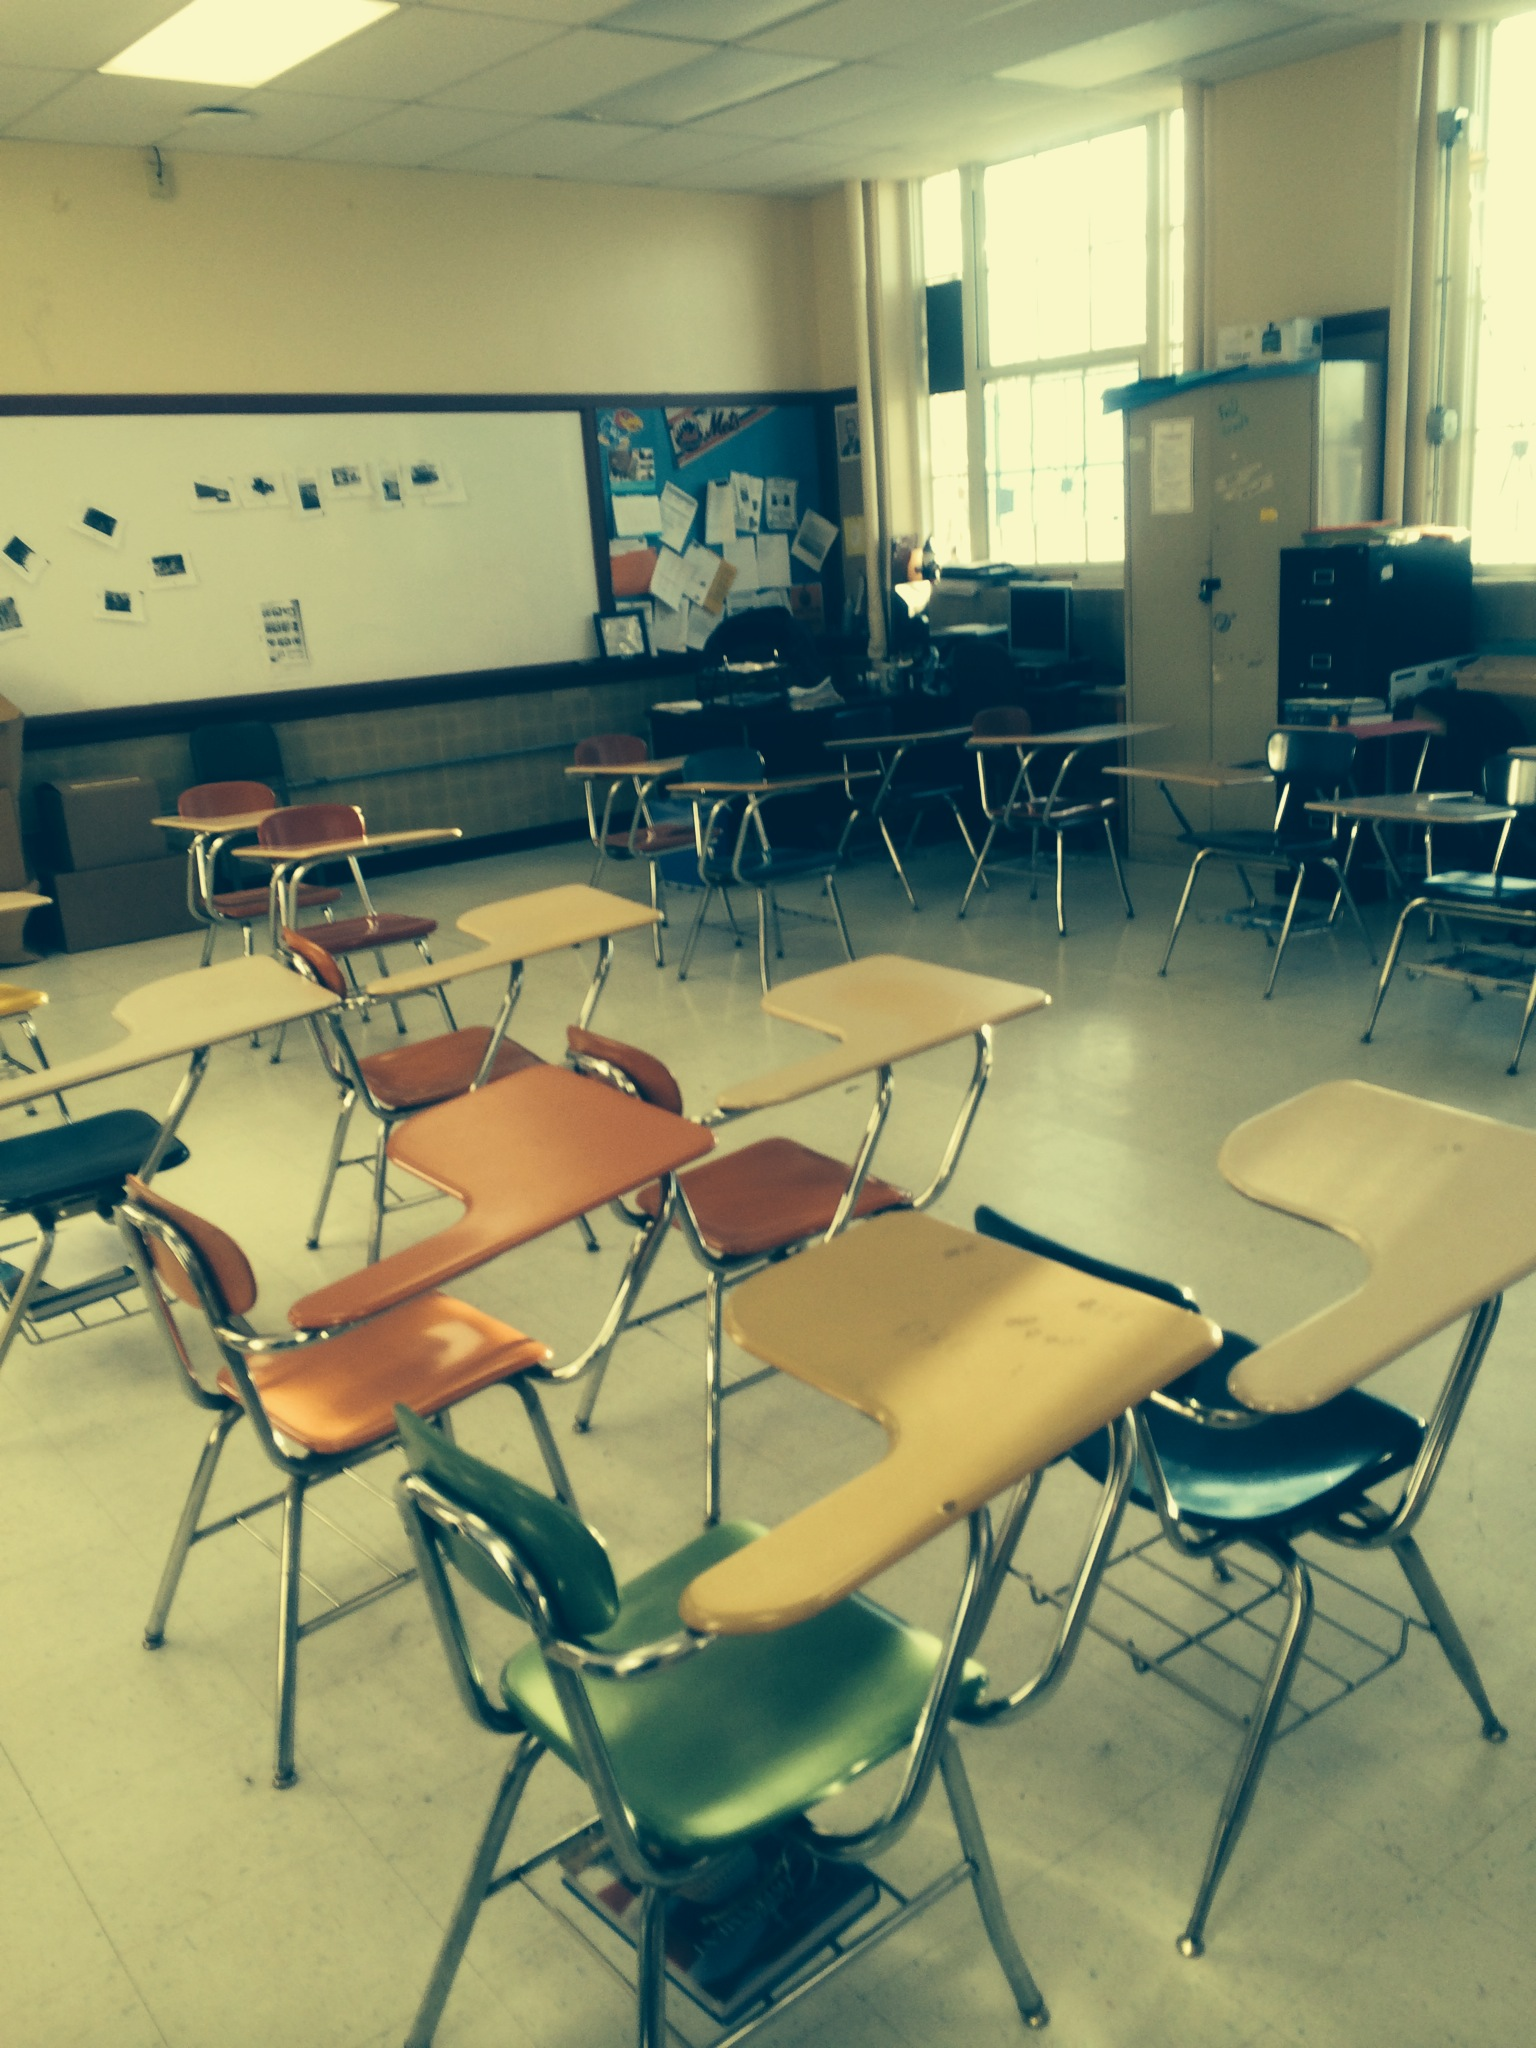 Elementary Classrooms Without Desks : March larry cuban on school reform and classroom